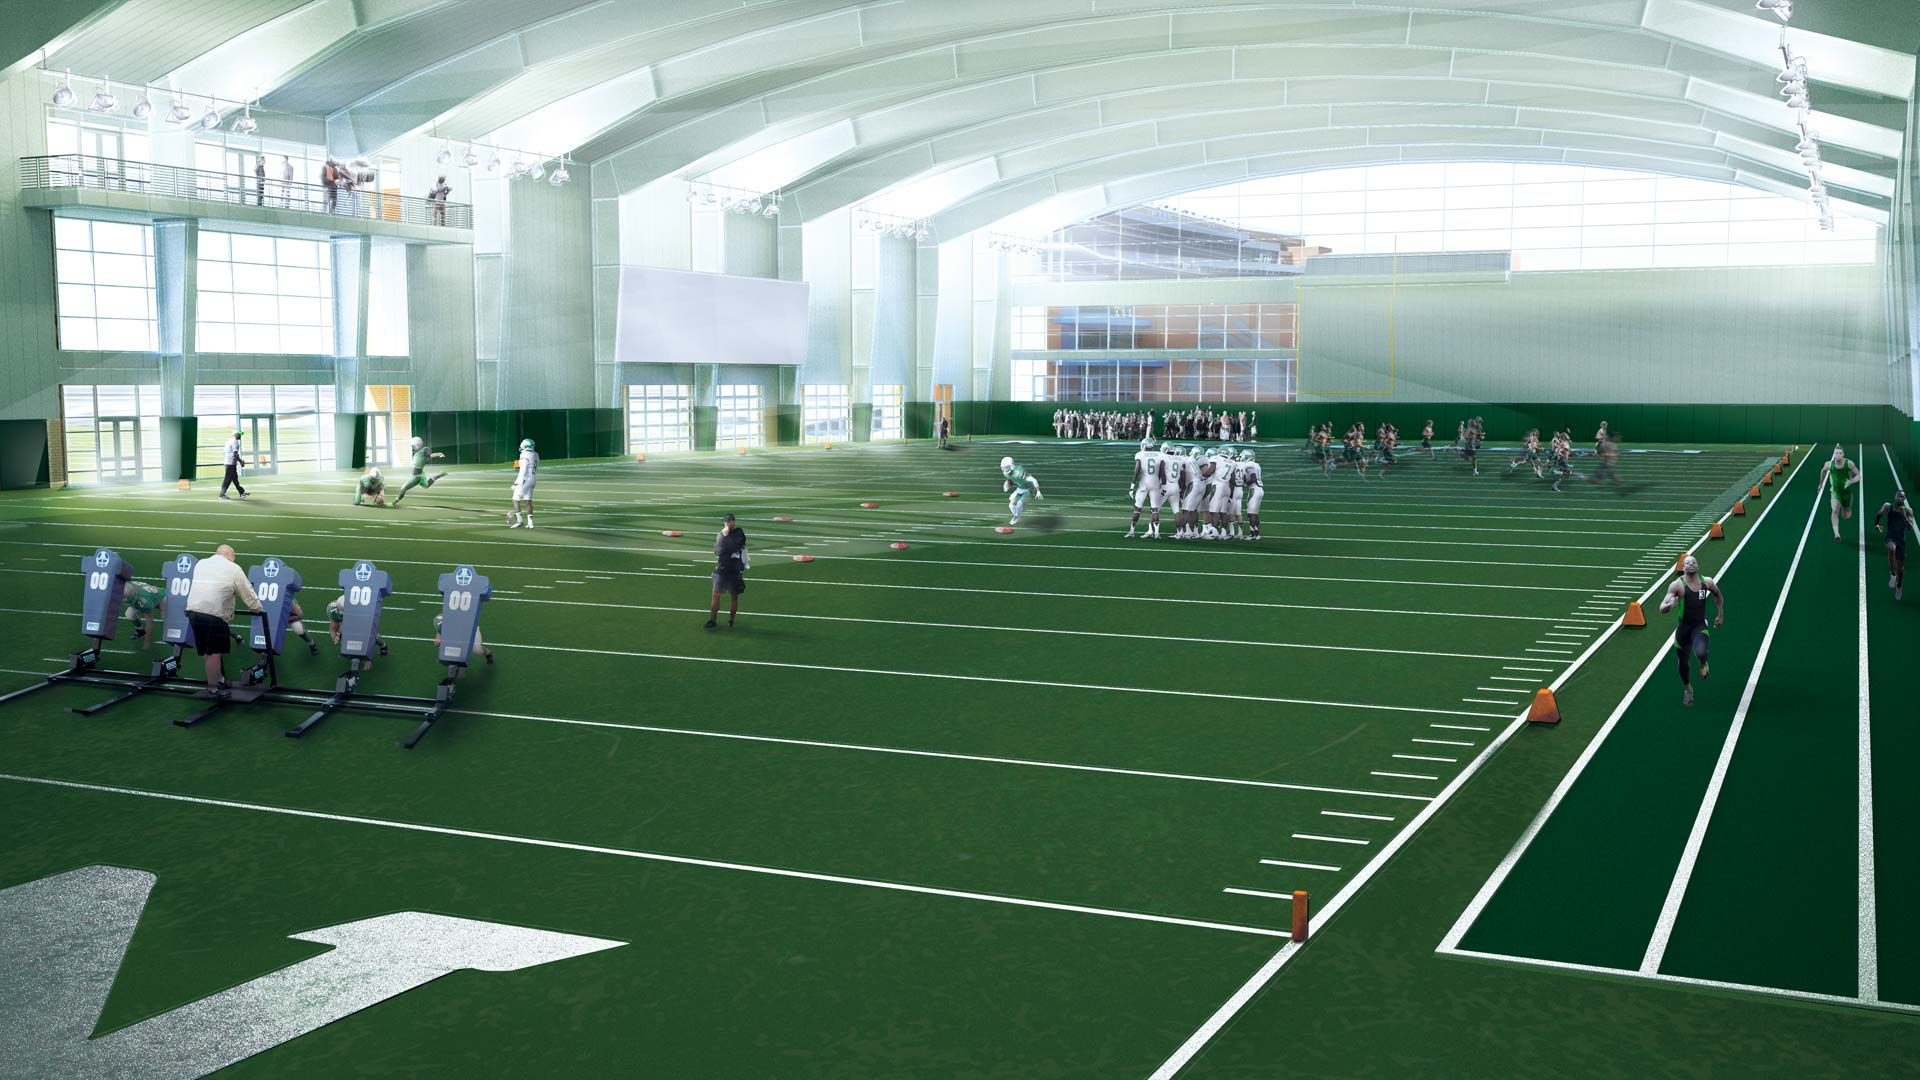 Indoor Practice Facility Named For Lovelaces, McNatts